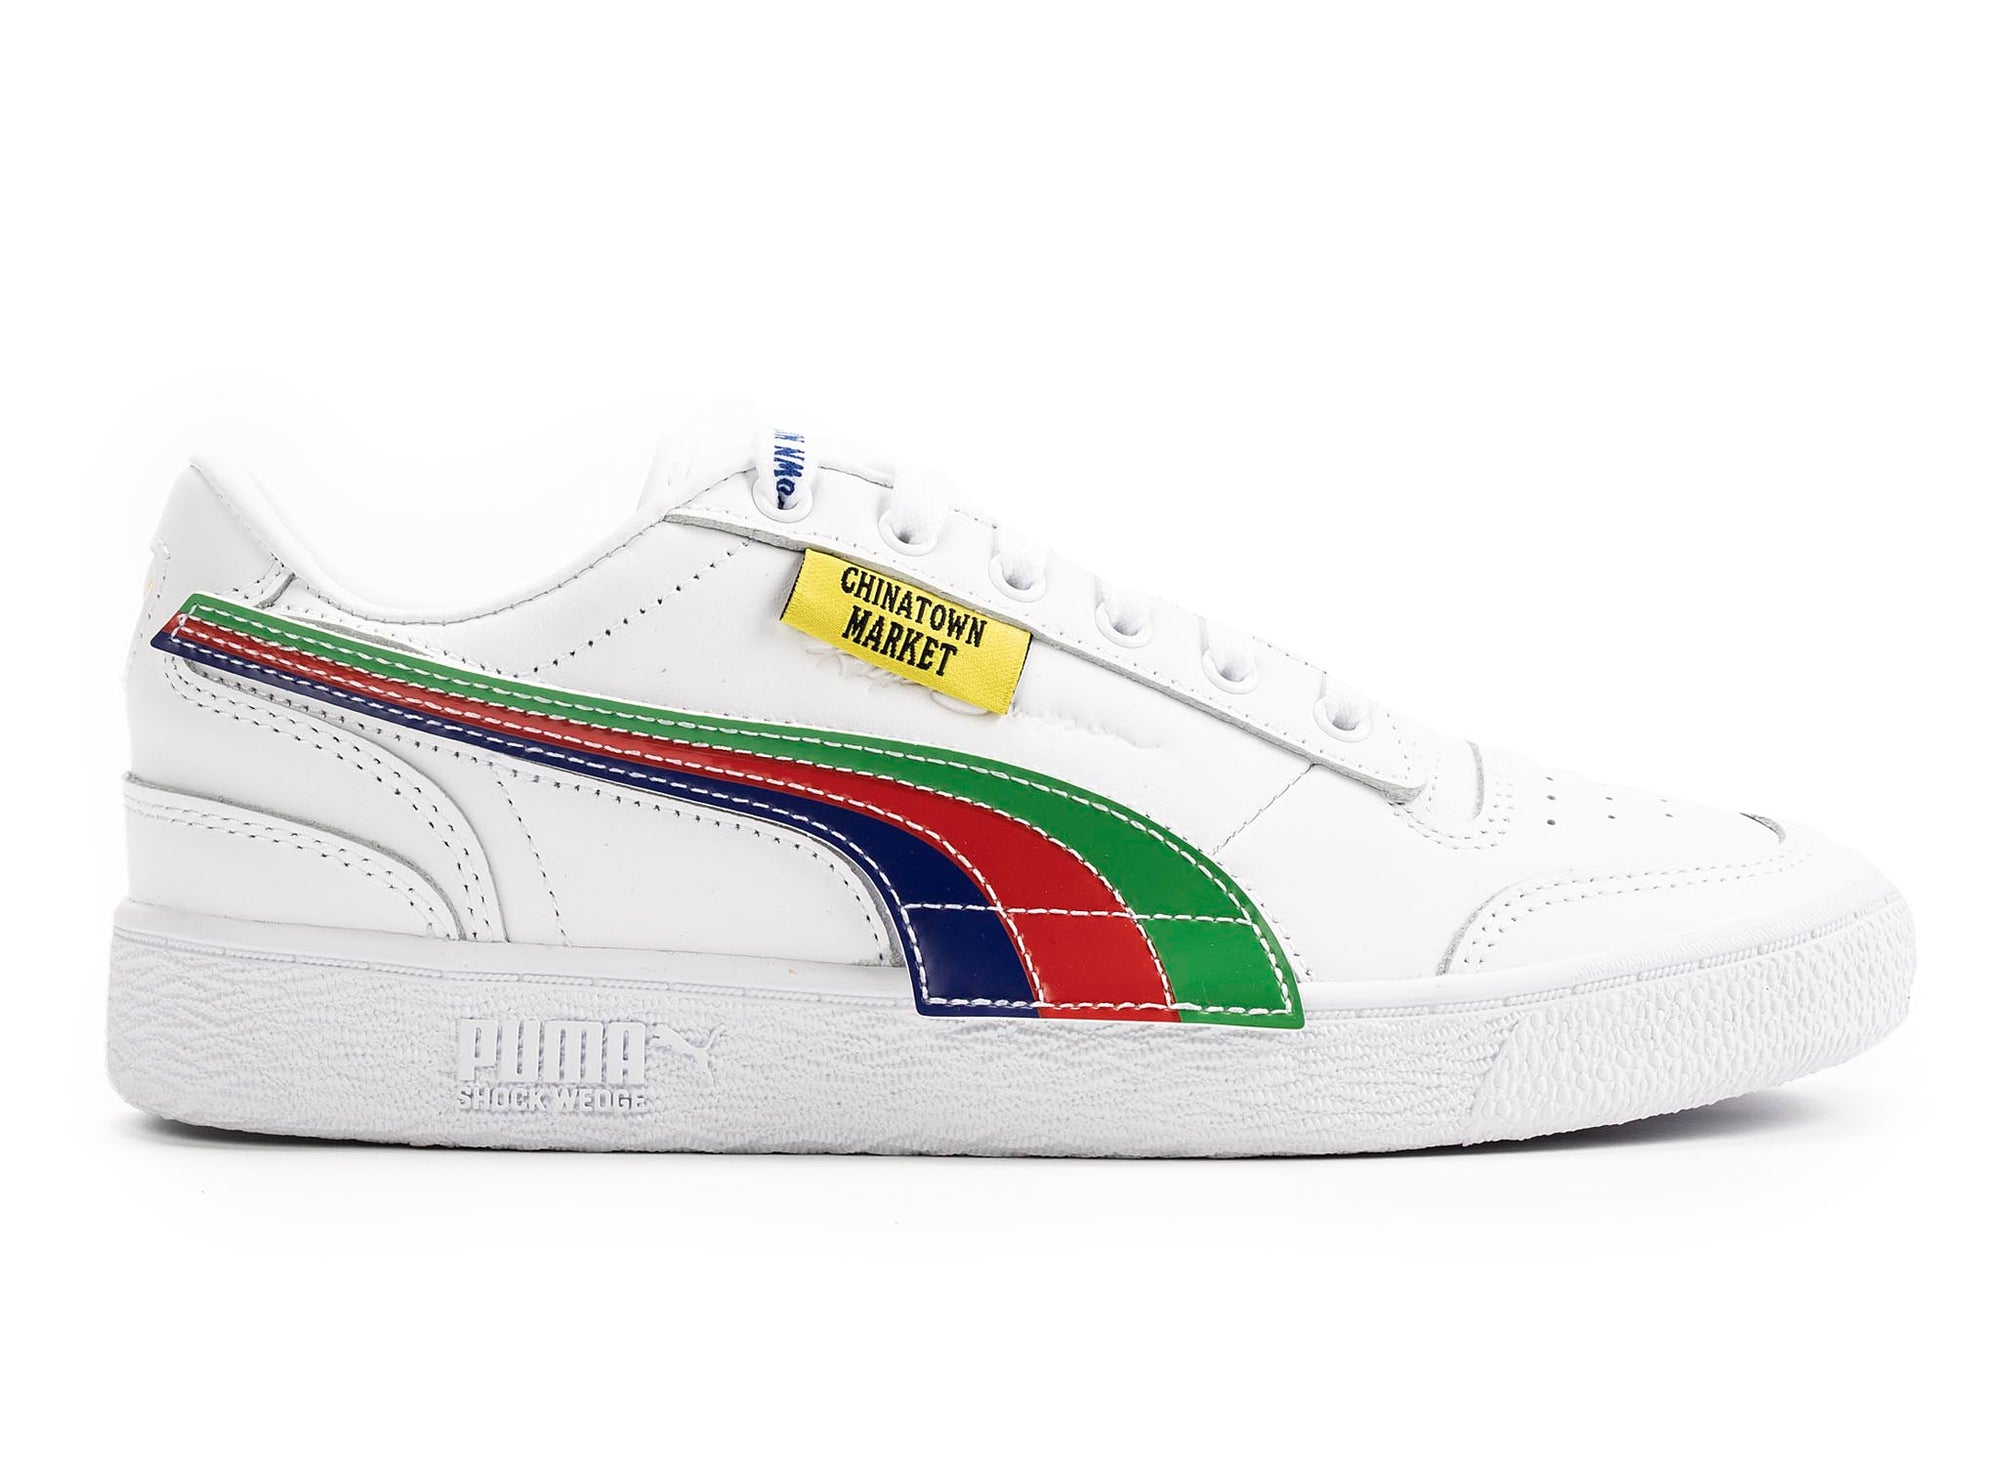 Puma Ralph Sampson Low x Chinatown Market 'White'